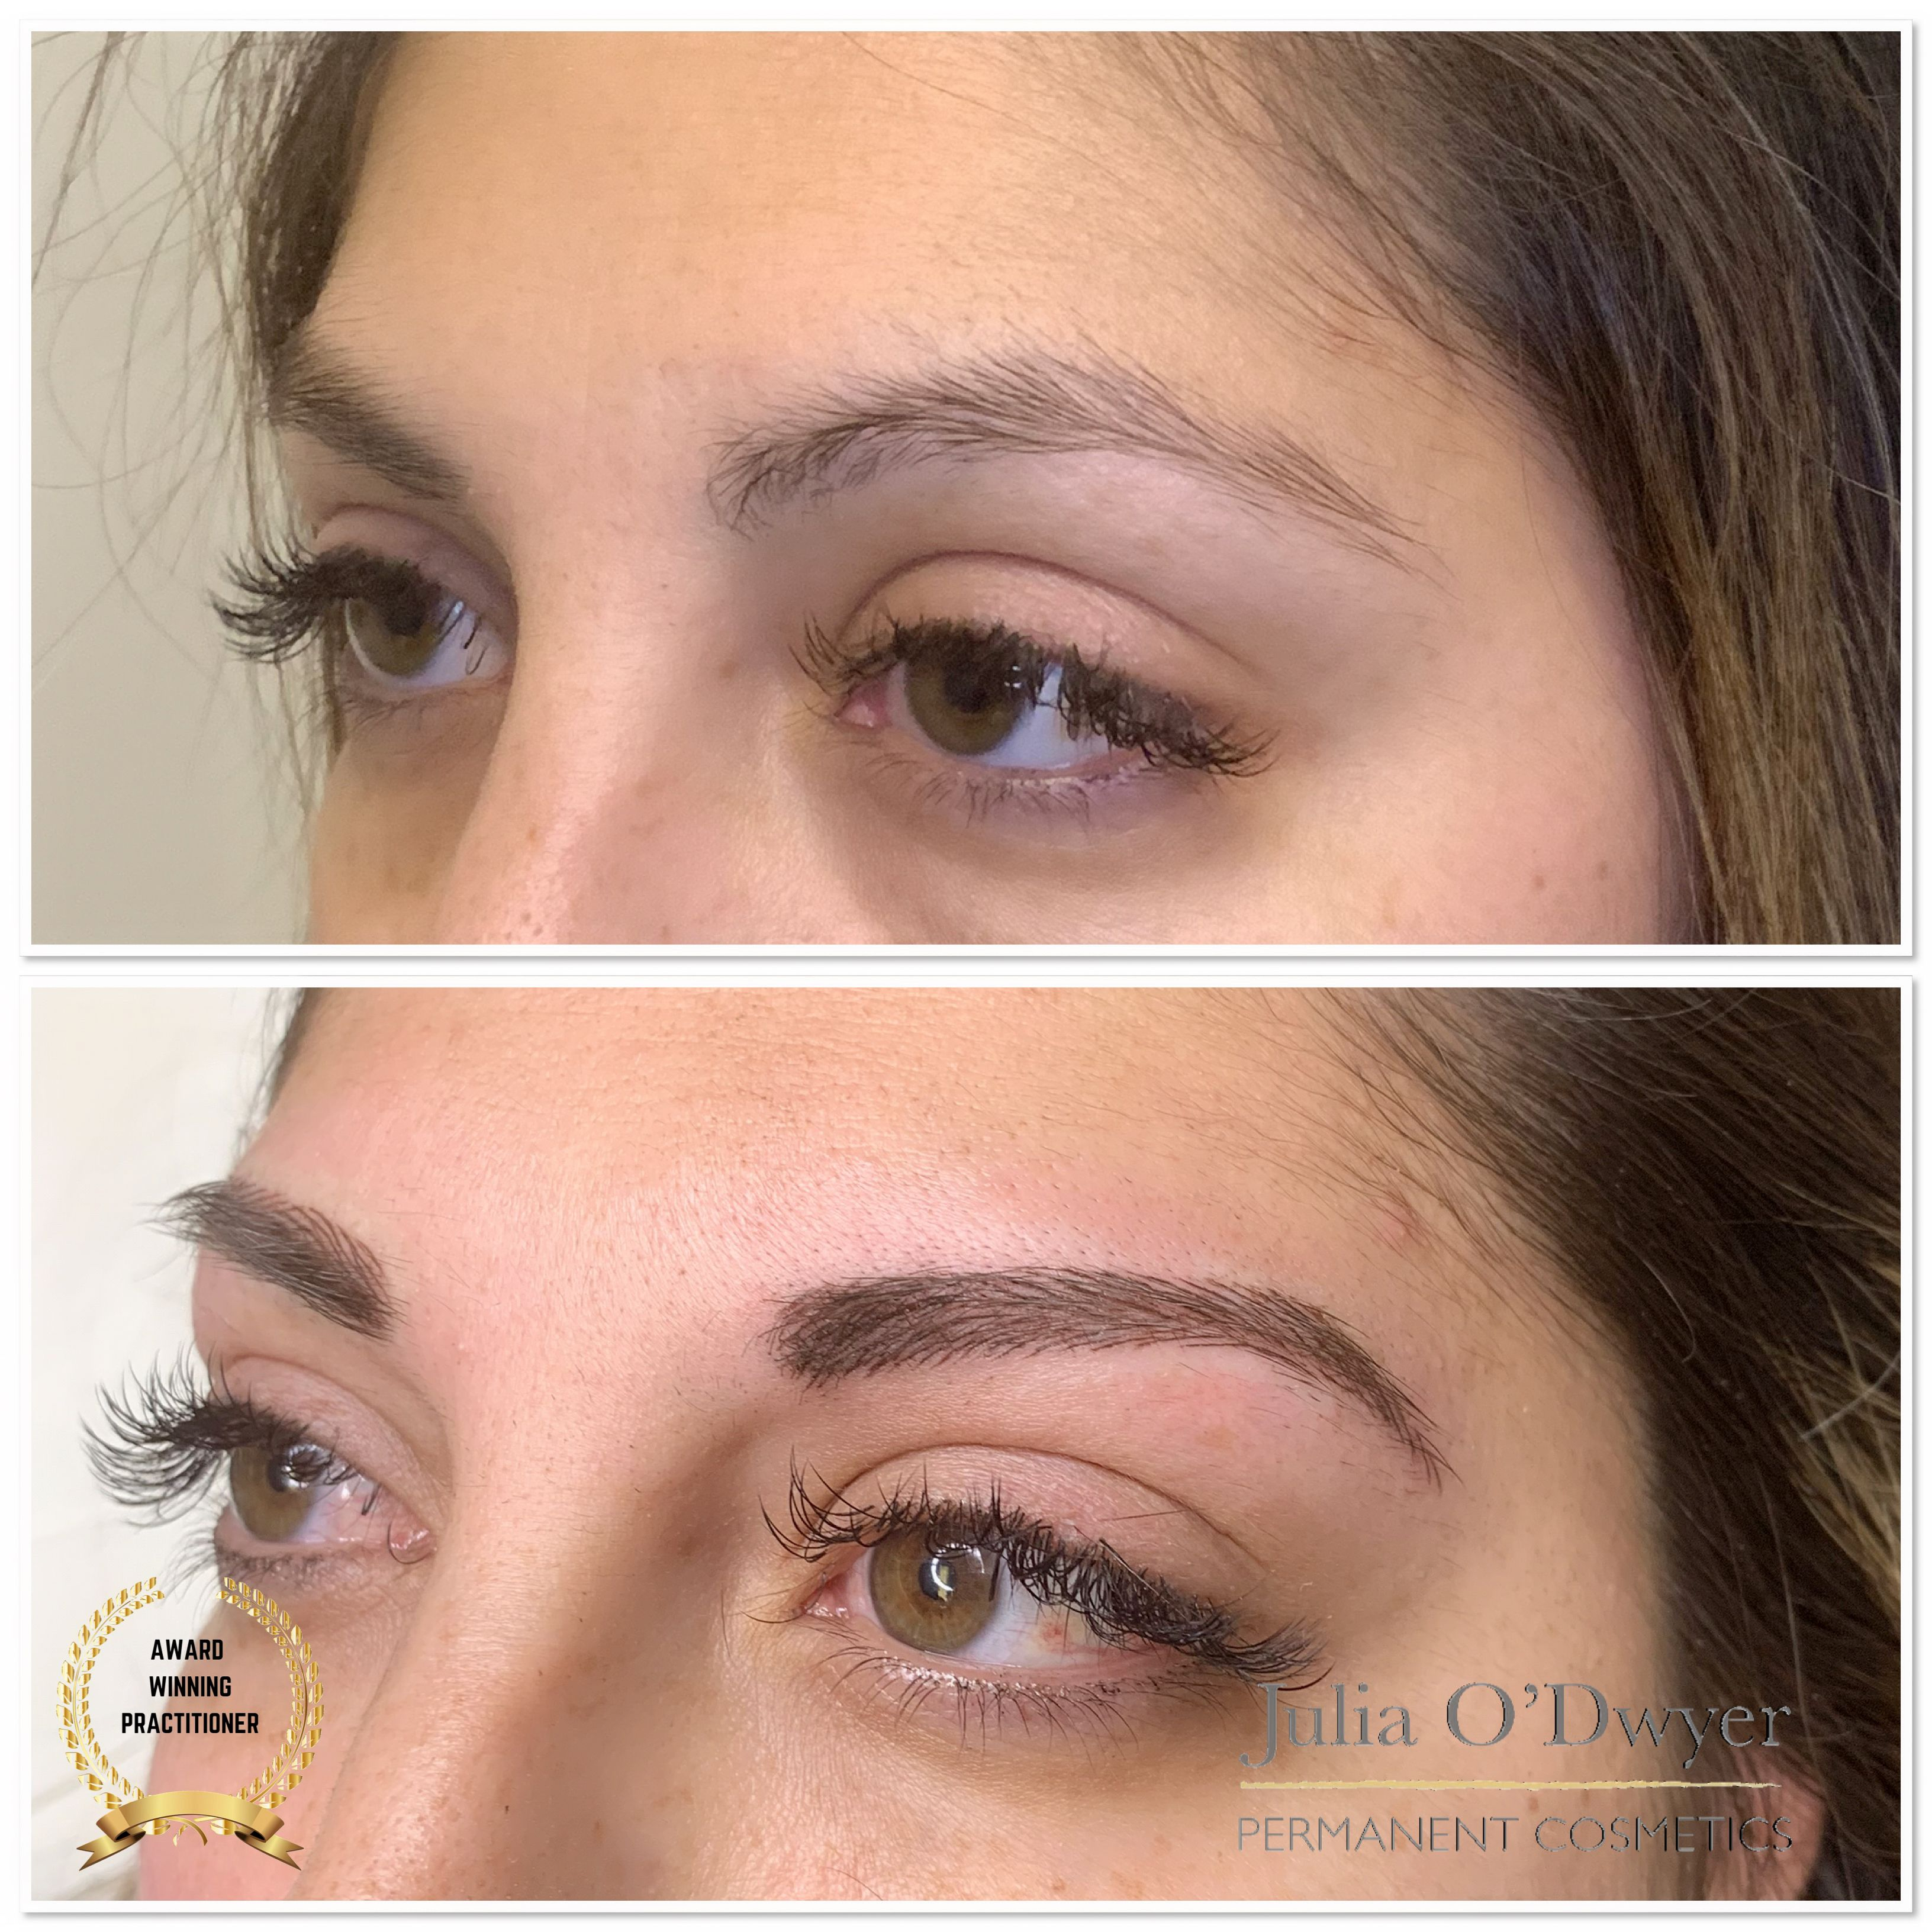 This client simply looks styled and stunning with her new hairstroke brows and eyelashes. They will heal very natural to just frame her beautiful eyes.   👉Multi Award Winning Practitioner 👉Changing life's 👉Free consultations ☎️07756967824 📧julia@julia-odwyer.com 🌐www.julia-odwyer.com 🗓juliaodwyer.book.app . . . .  #hairstrokebrows #beforeandafter #permanentmakeup #permanentbrows #permanenteyeliner #redlodge #microbladingeyebrows #love #brow #browtint #beautiful #volumelashes #perfectbrows